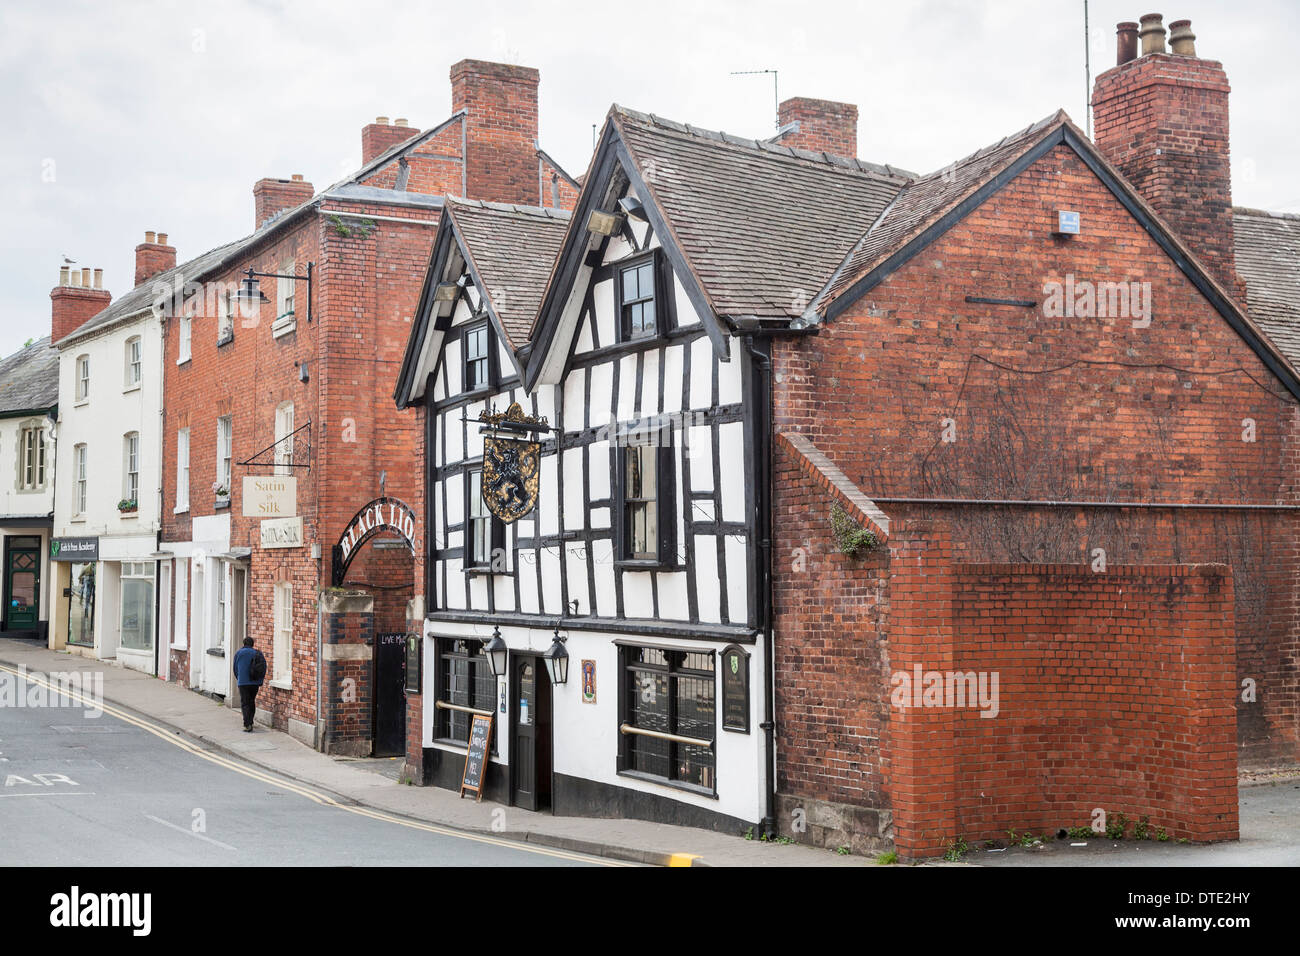 Man walks away from the Black Lion pub, a traditional historic black and white timbered building in Hereford, UK - Stock Image